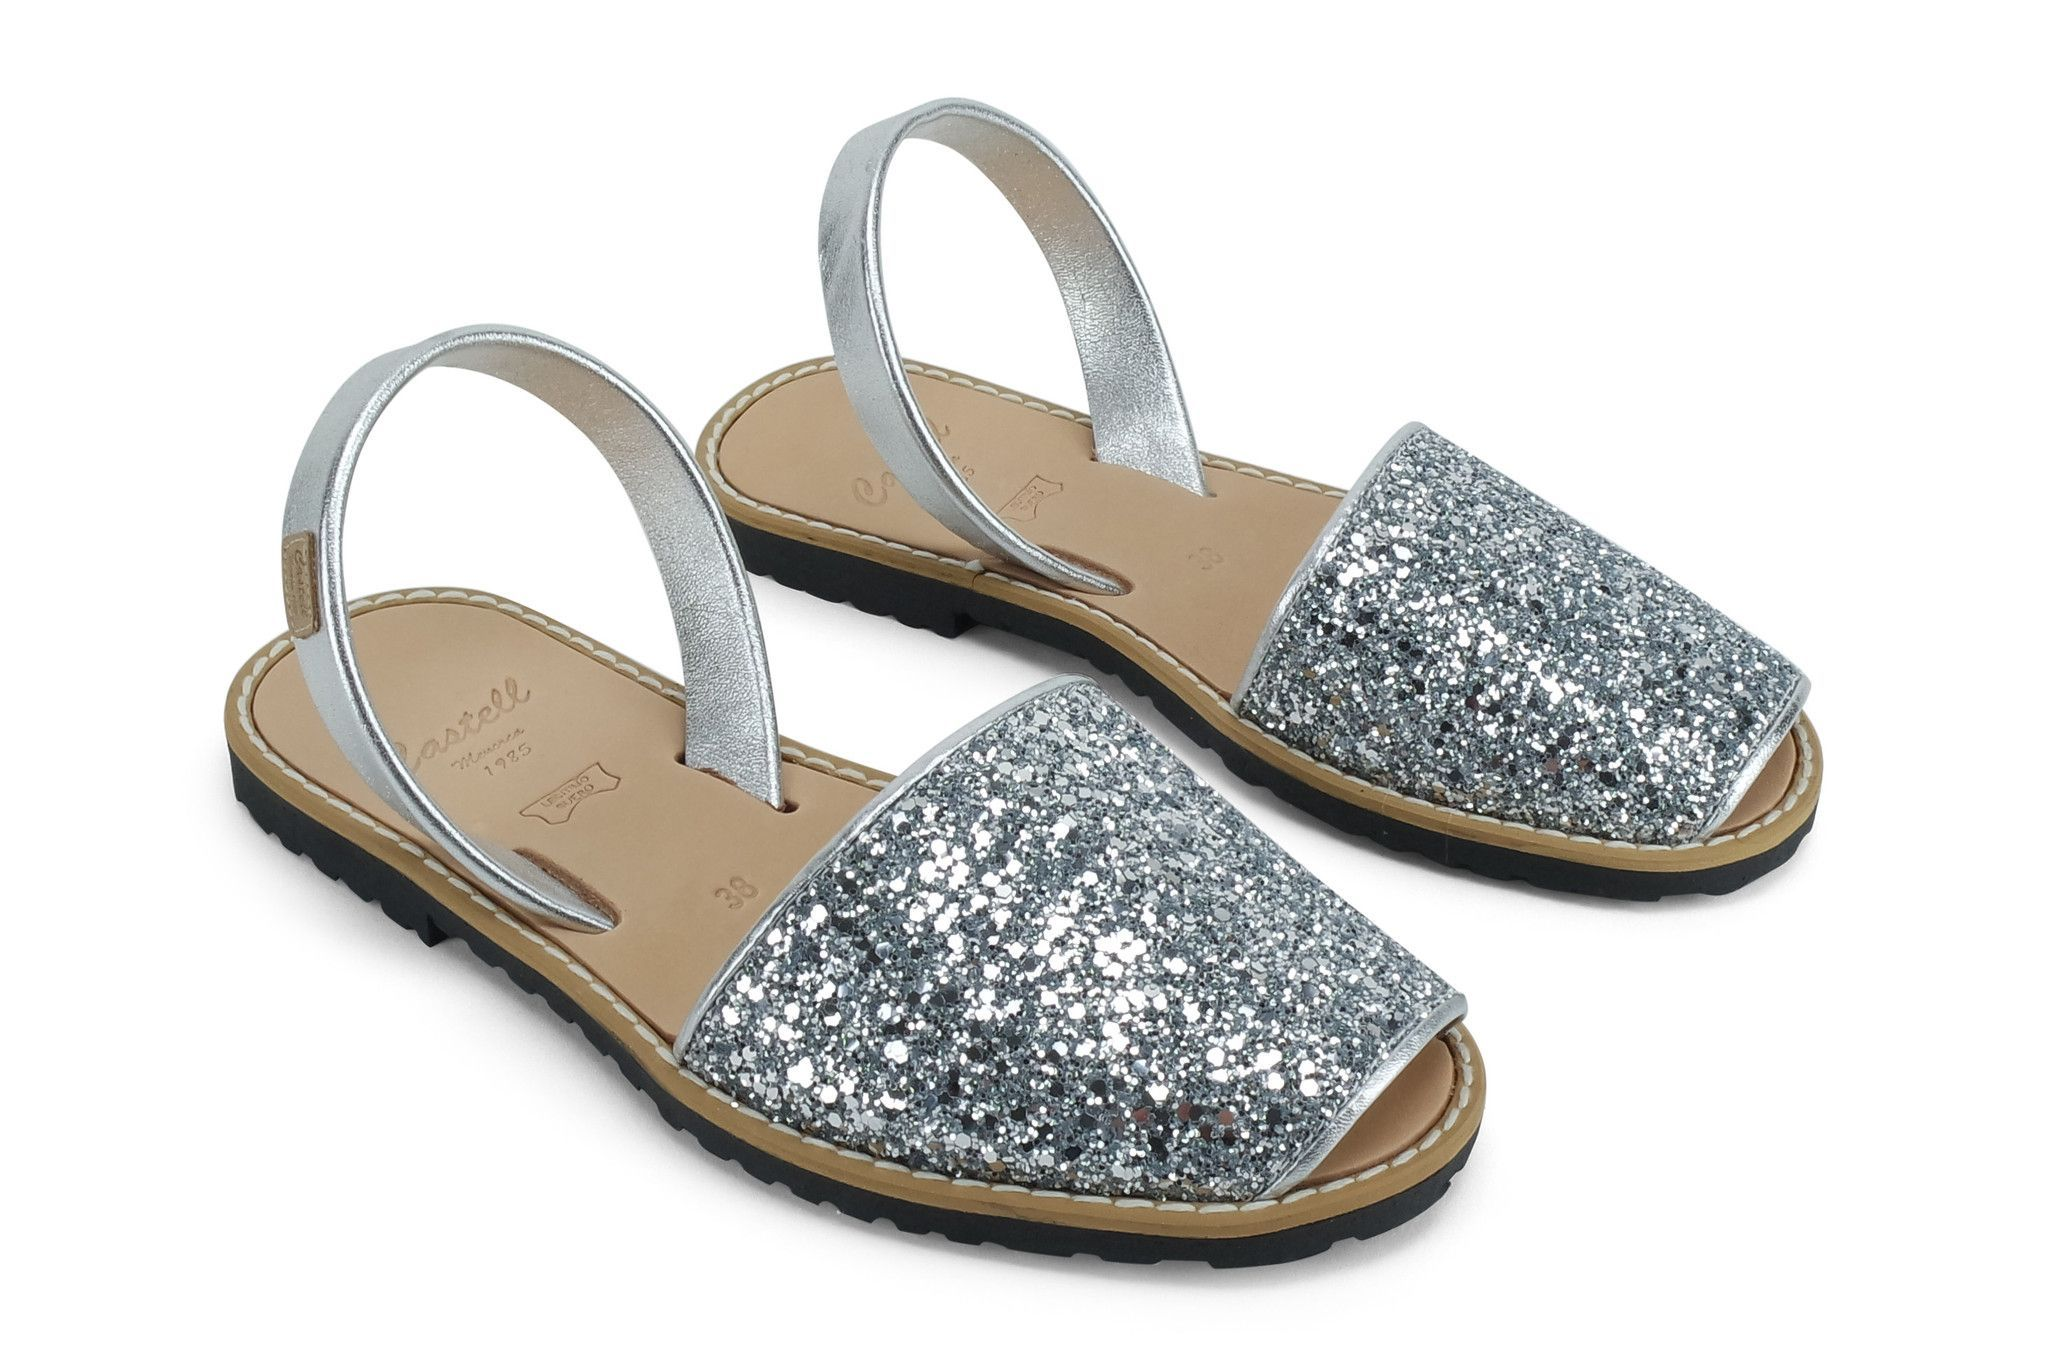 5a7f728261f1 Comfy and chic Sandals in Silver Glitter by Castell at The Avarca Store.